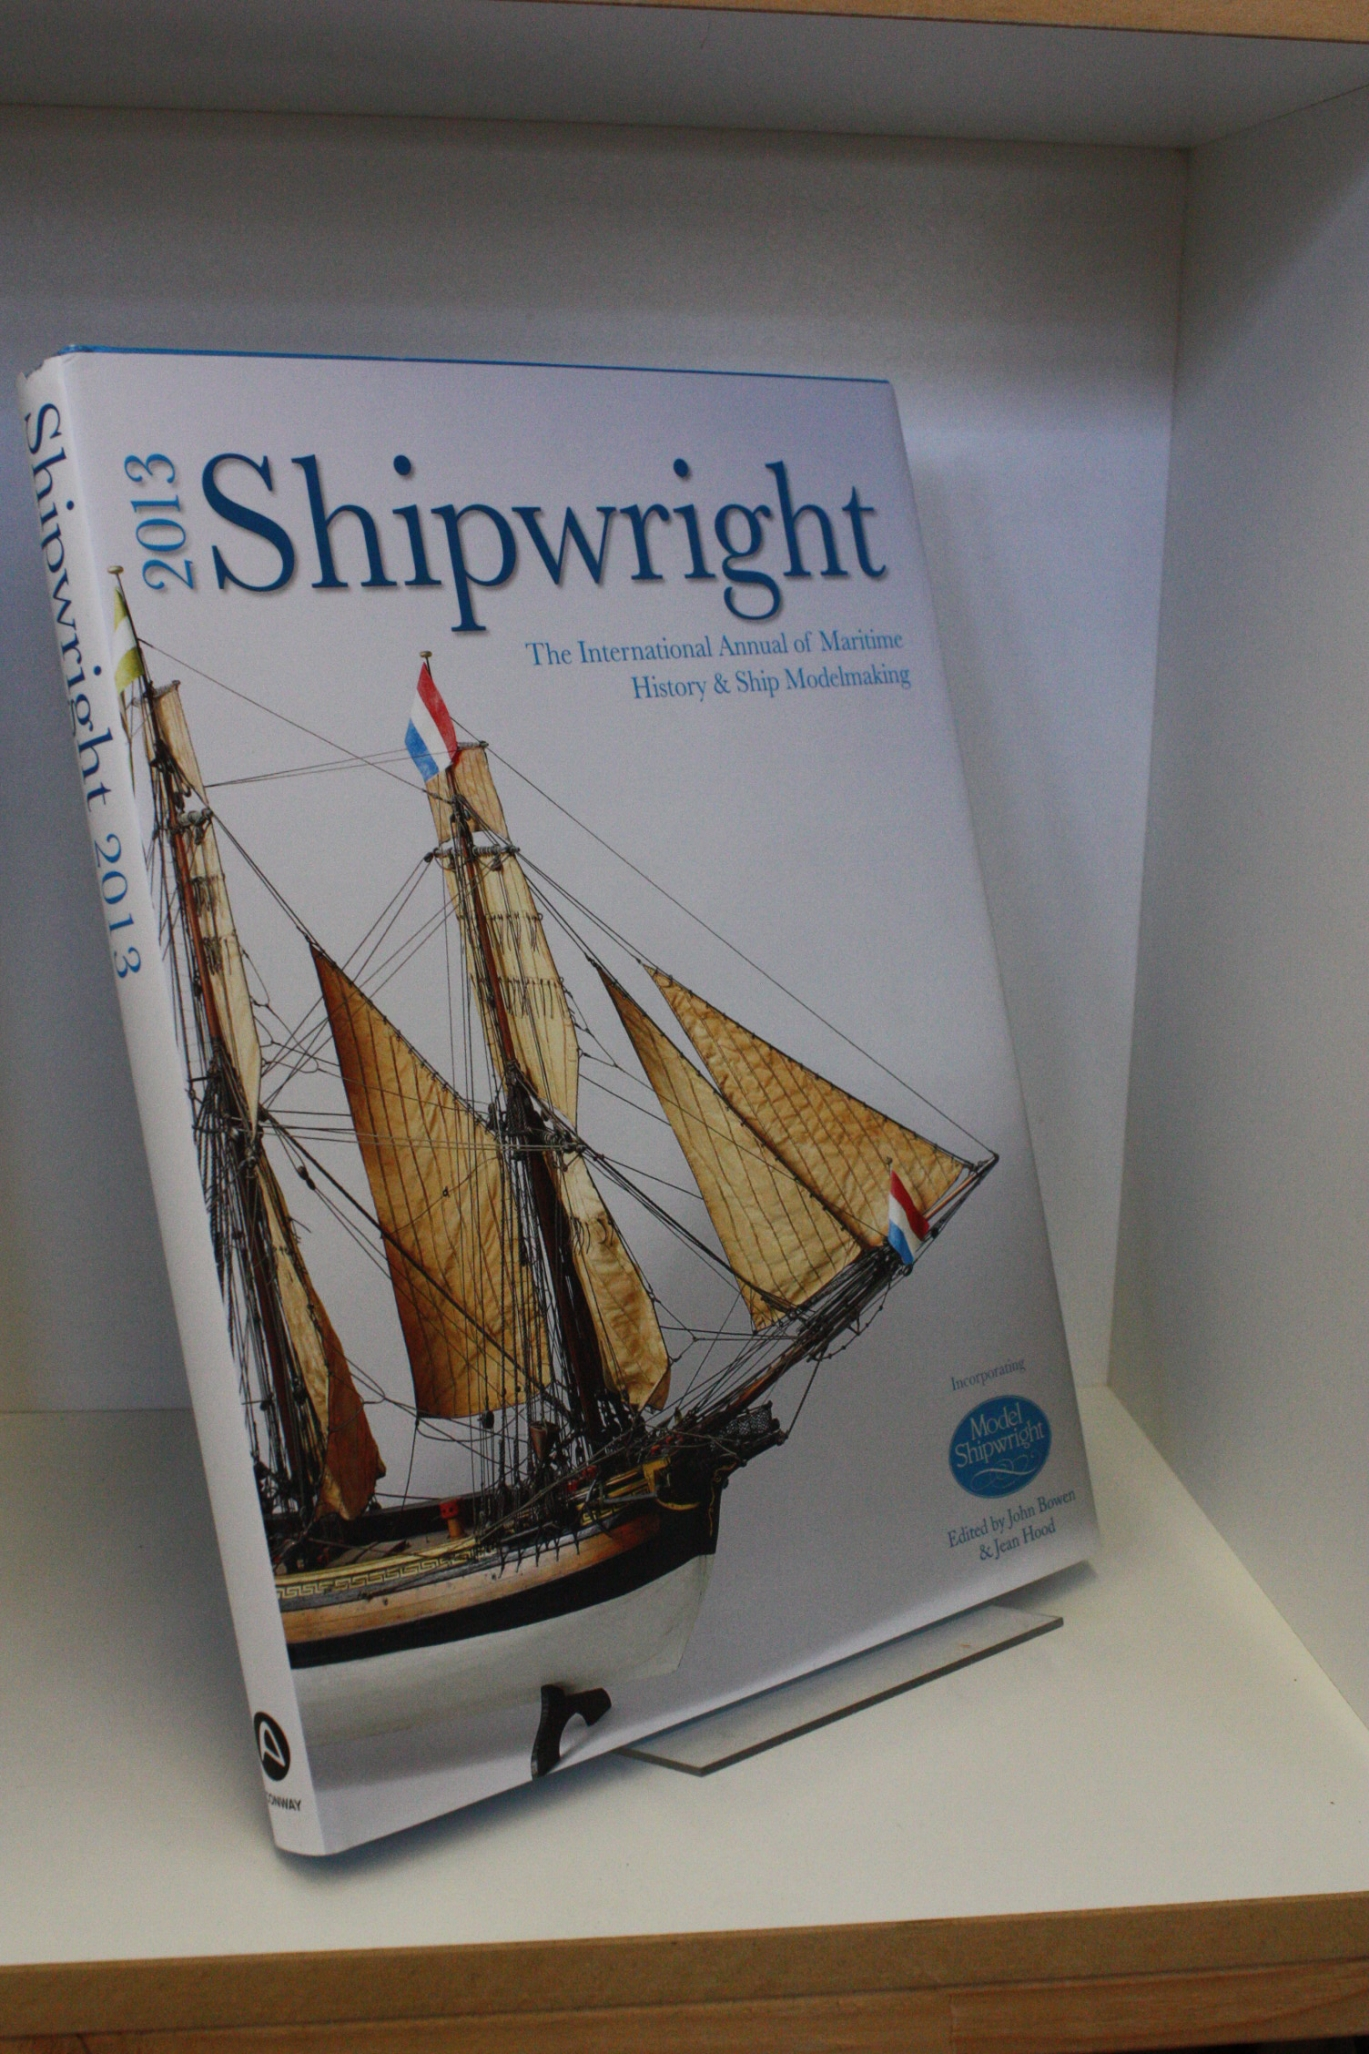 John Bowen: Shipwright 2013 The International Annual of Maritime History and Ship Modelmaking